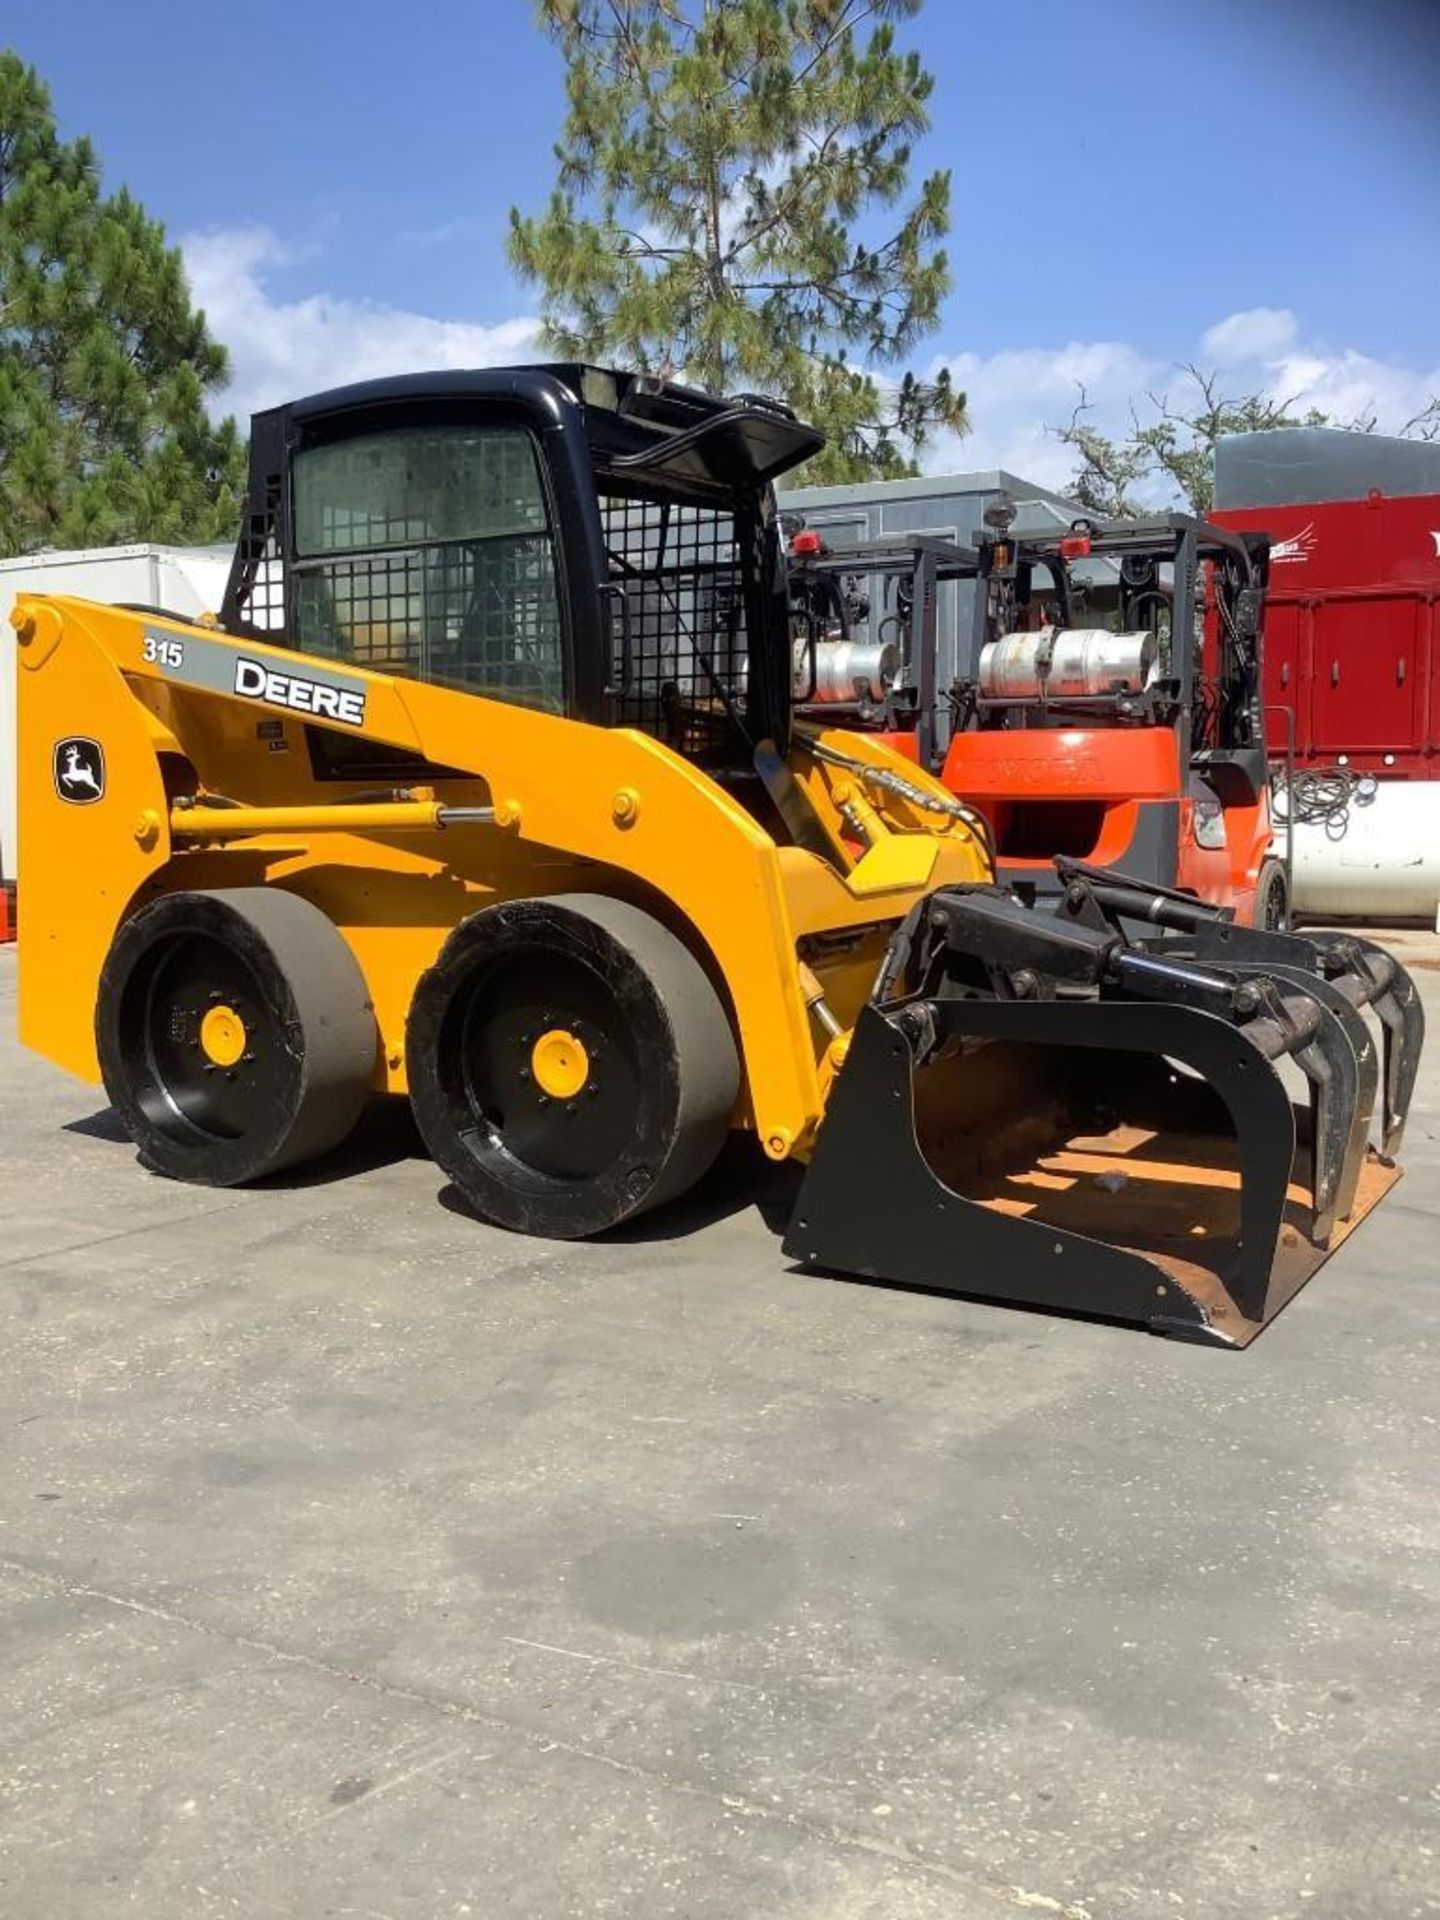 JOHN DEERE SKIDSTEER MODEL 315, DIESEL, GRAPPLE ATTACHMENT, SOLID TIRES, AUX HYDRAULIC, ENCLOSED CAB